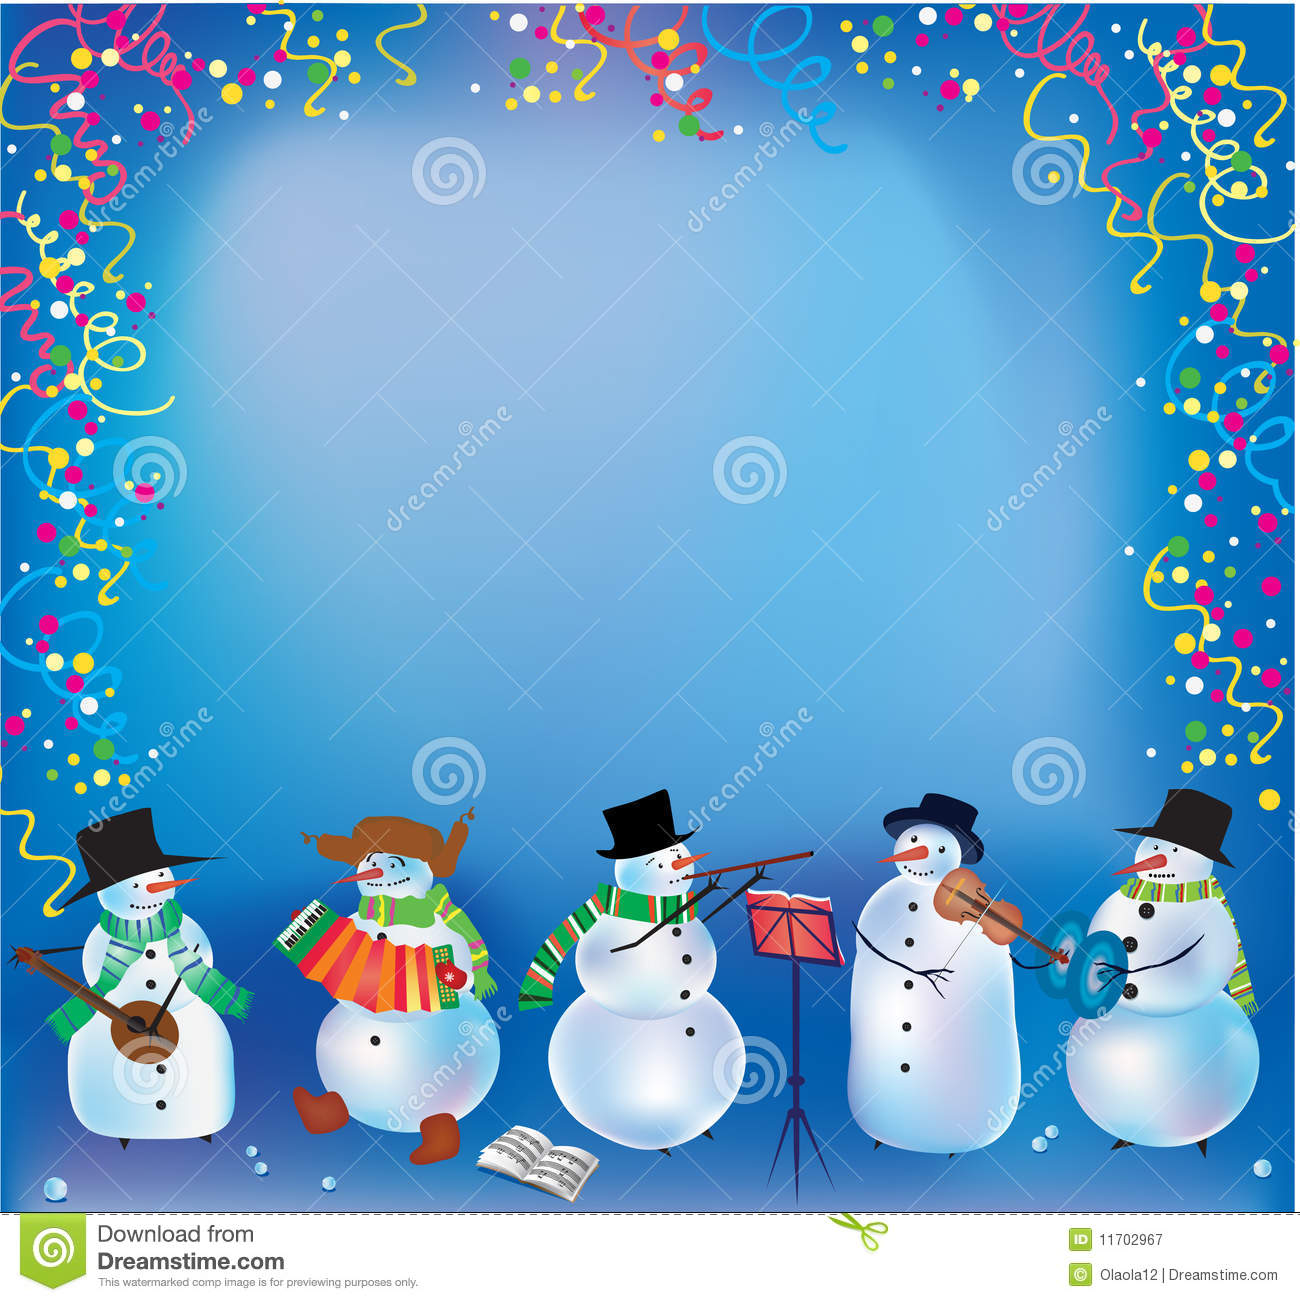 Christmas Background With Funny Snowmen Stock Vector - Illustration